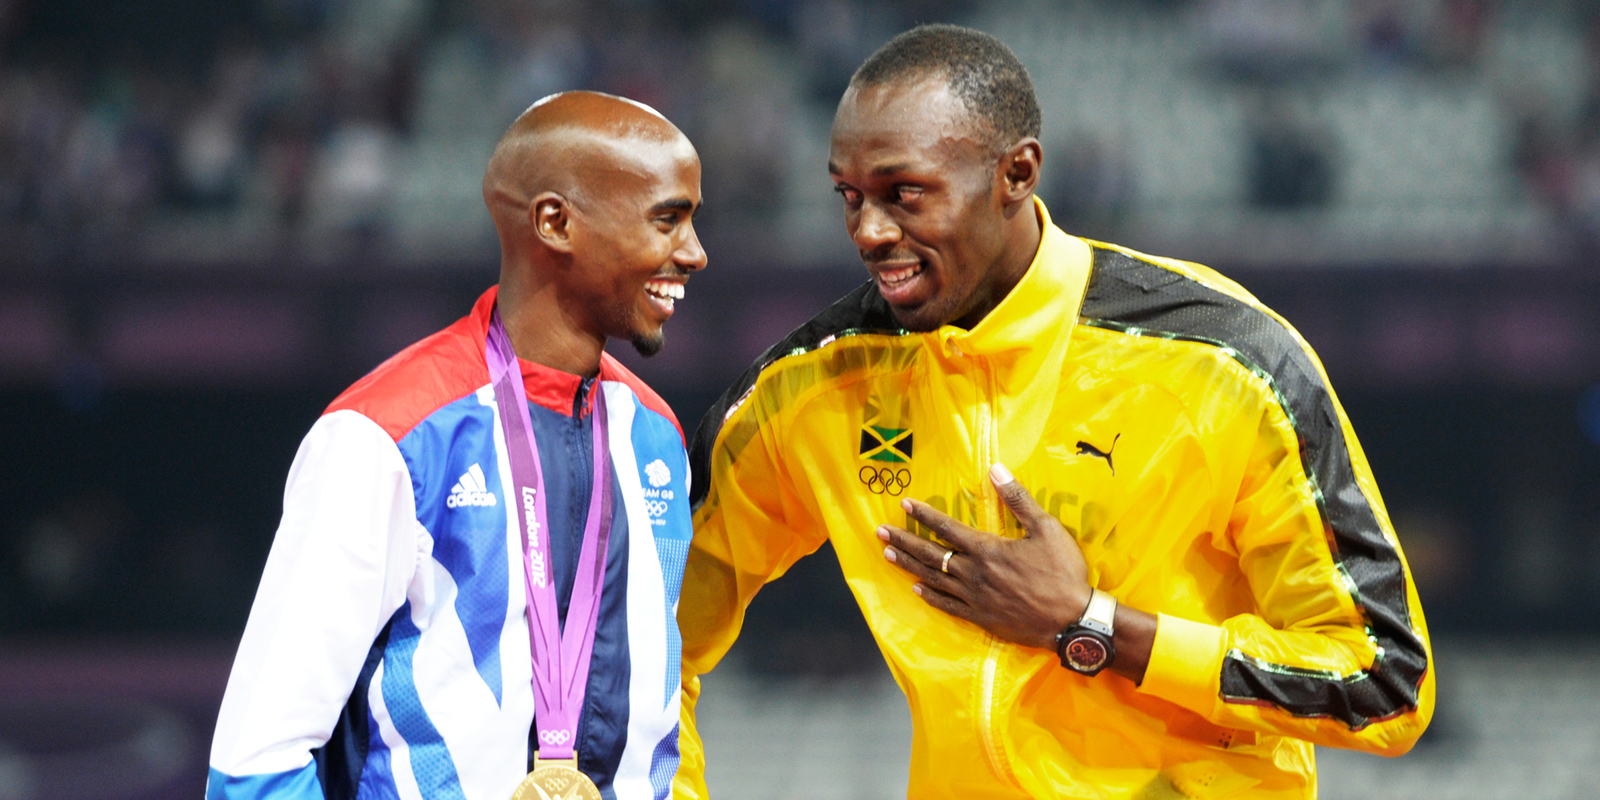 1600x800-usain-bolt-and-mo-farah-43-jpg-cb86e412